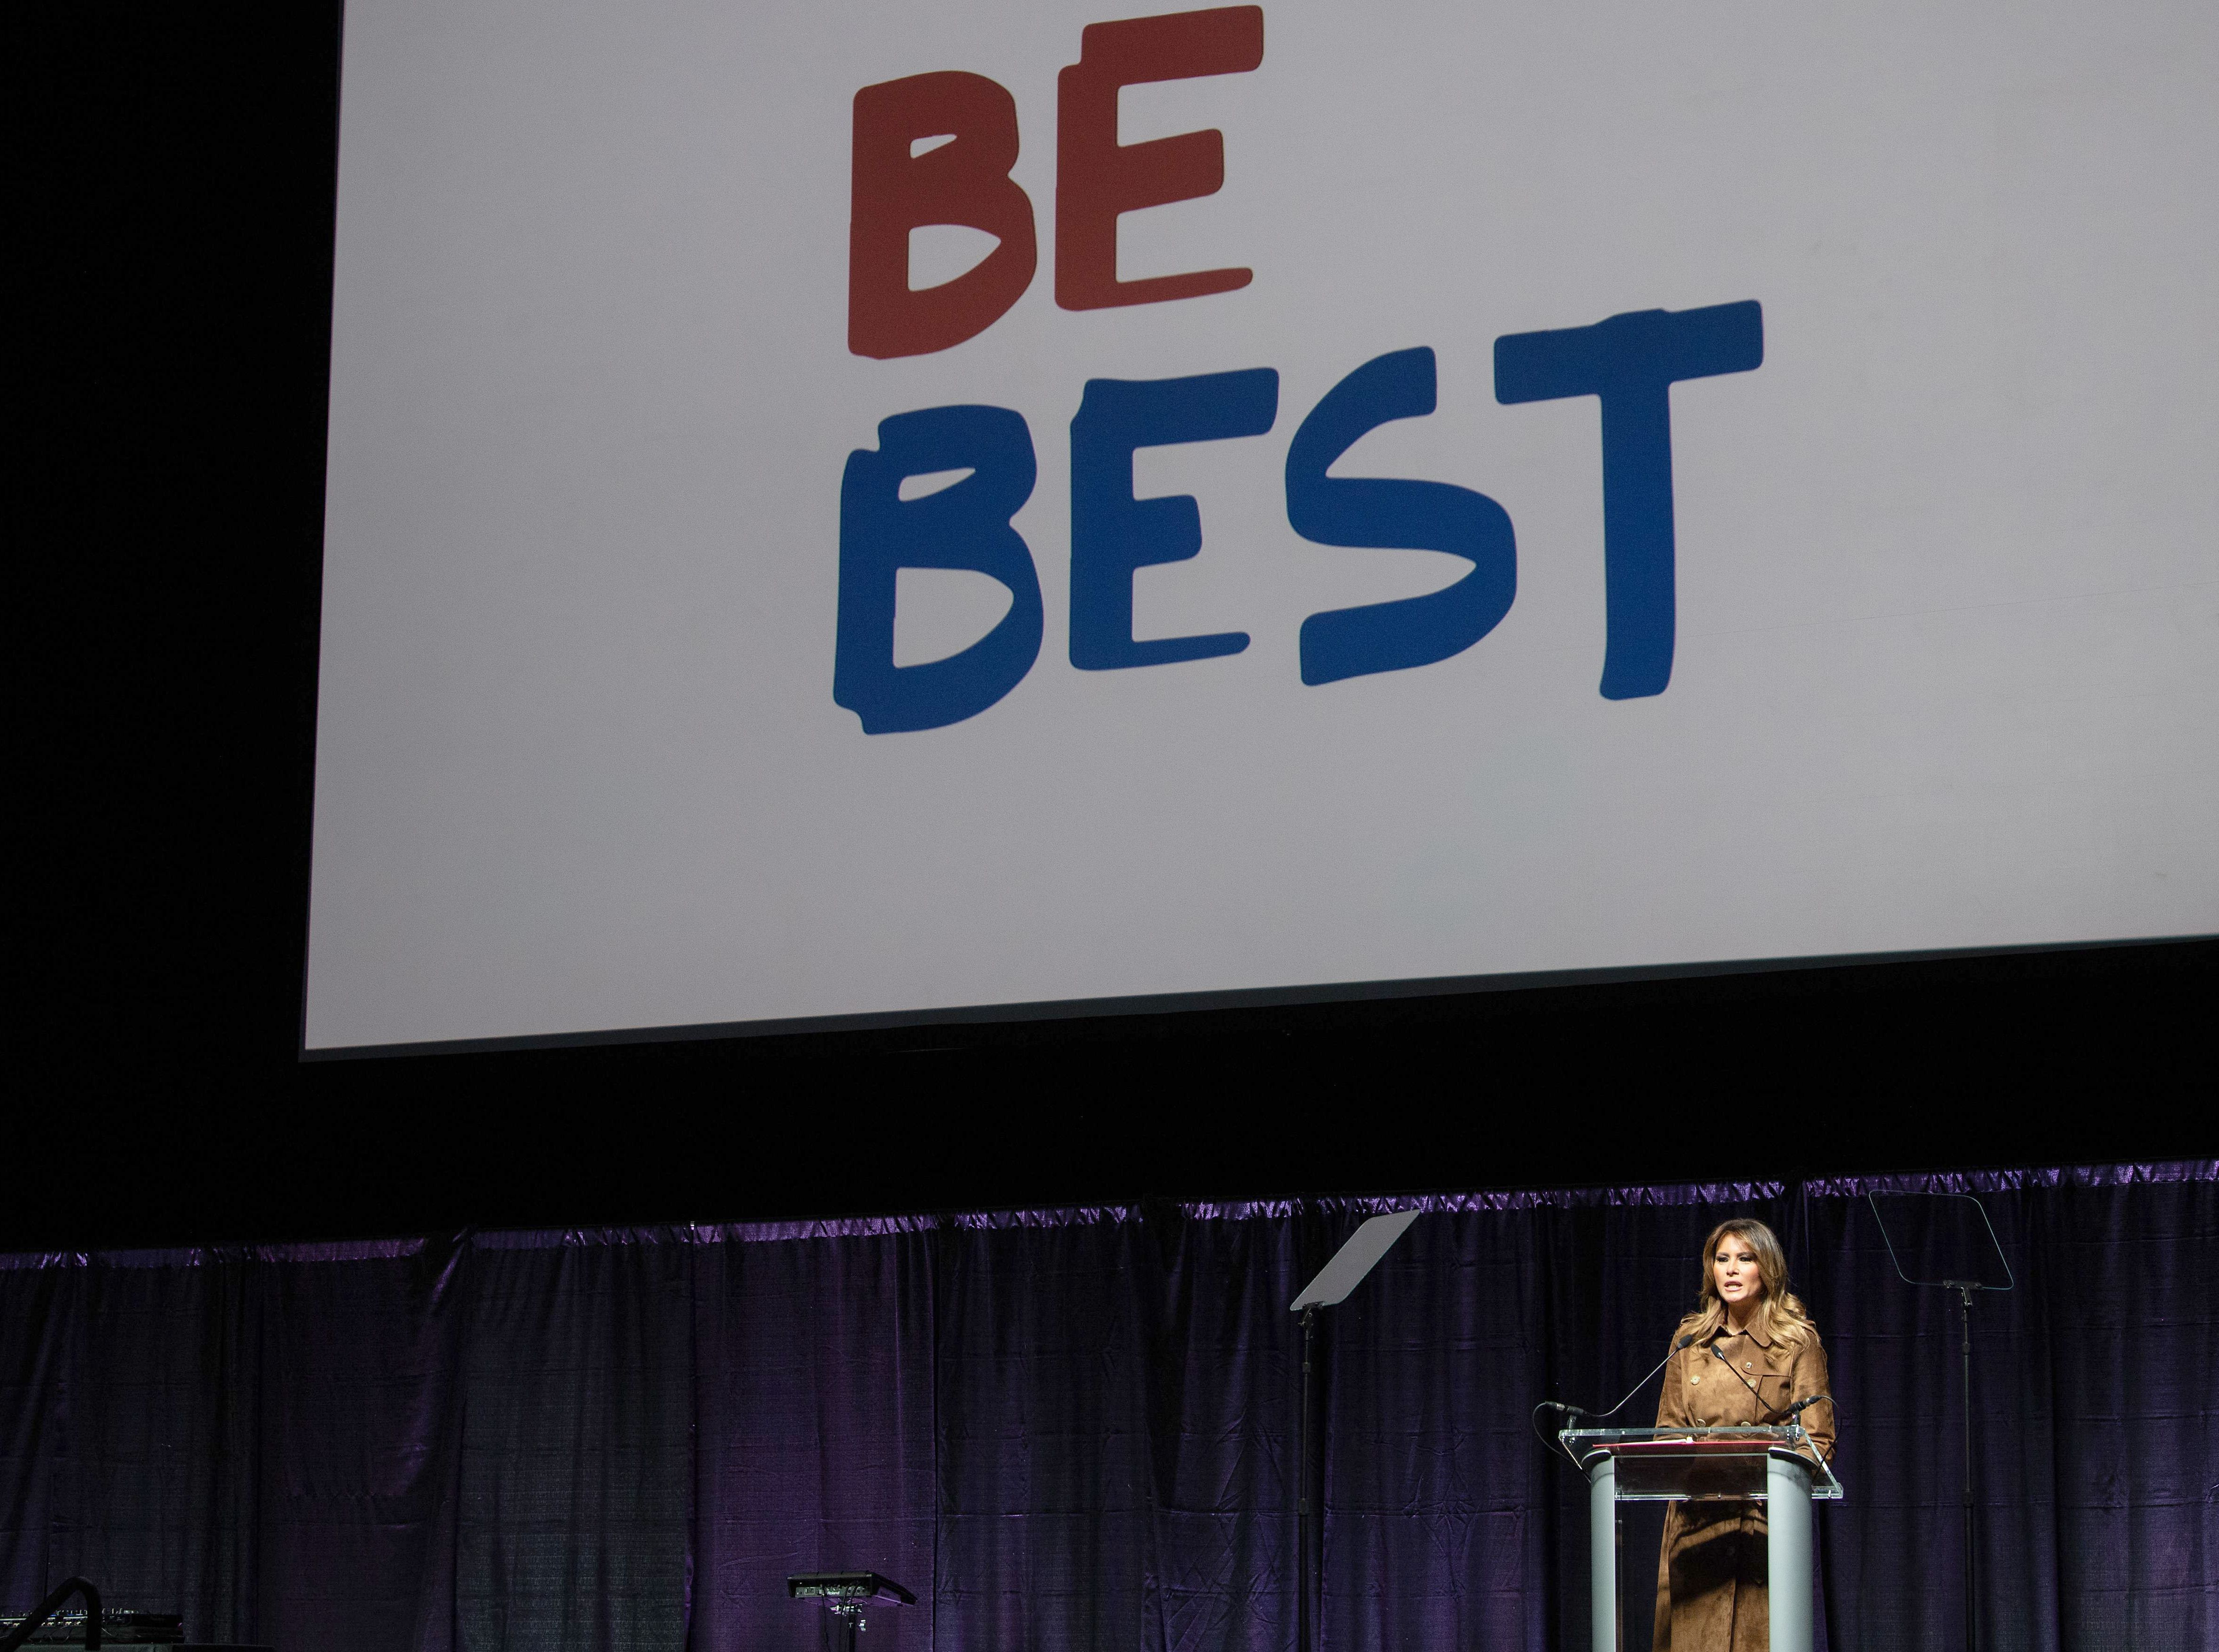 US First Lady Melania Trump addresses the B'More Youth Summit in Baltimore, Maryland, on November 26, 2019. (NICHOLAS KAMM/AFP via Getty Images)